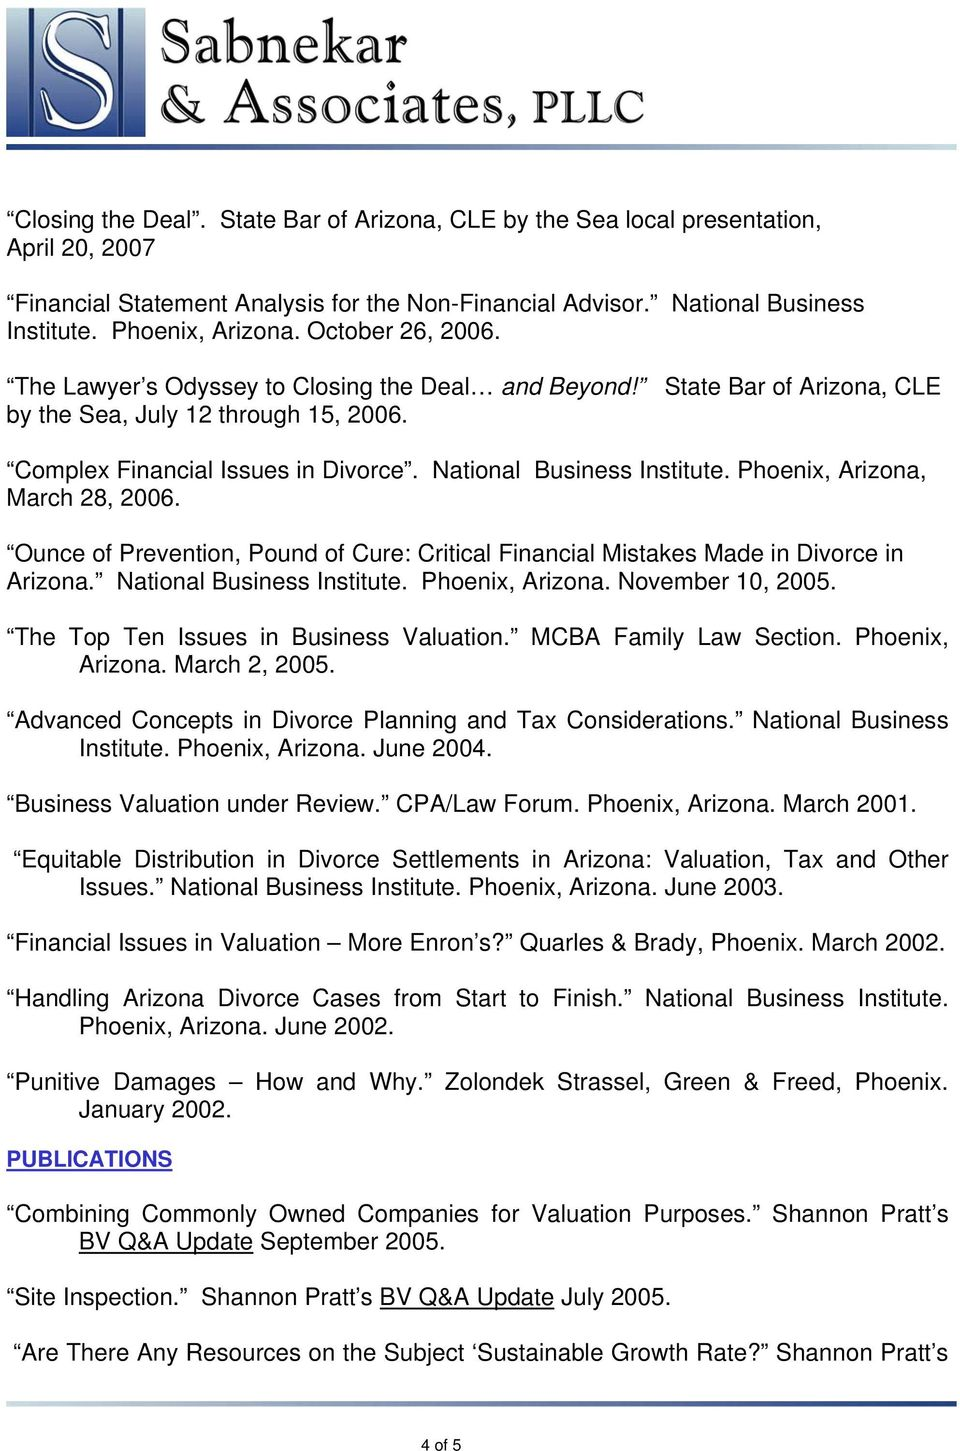 Phoenix, Arizona, March 28, 2006. Ounce of Prevention, Pound of Cure: Critical Financial Mistakes Made in Divorce in Arizona. National Business Institute. Phoenix, Arizona. November 10, 2005.